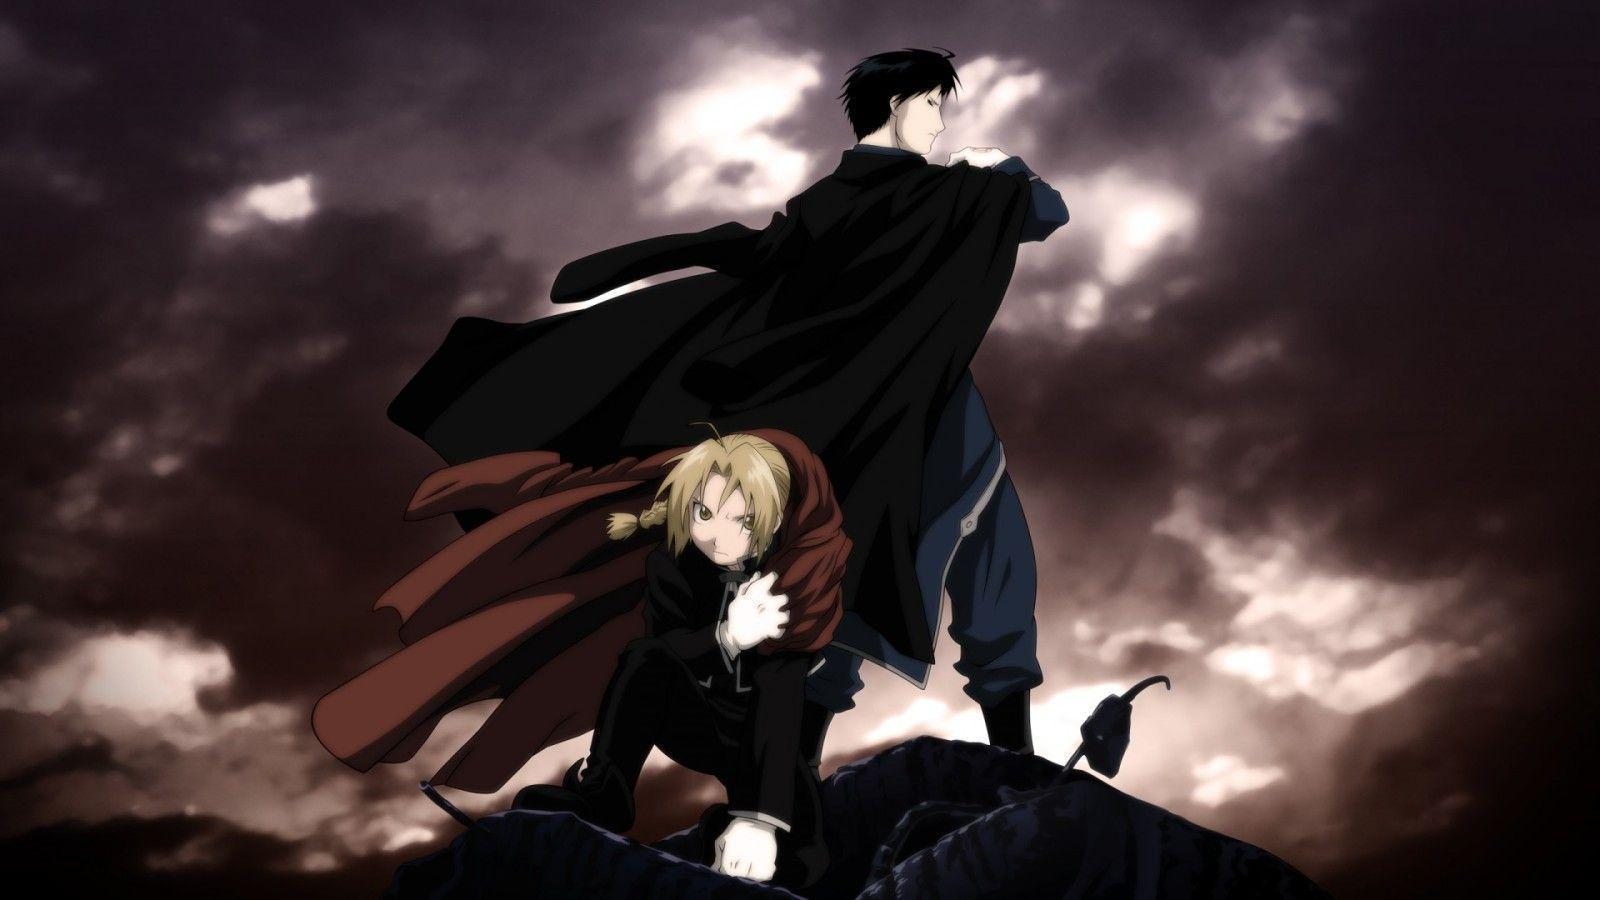 Roy Mustang Wallpapers - Wallpaper Cave